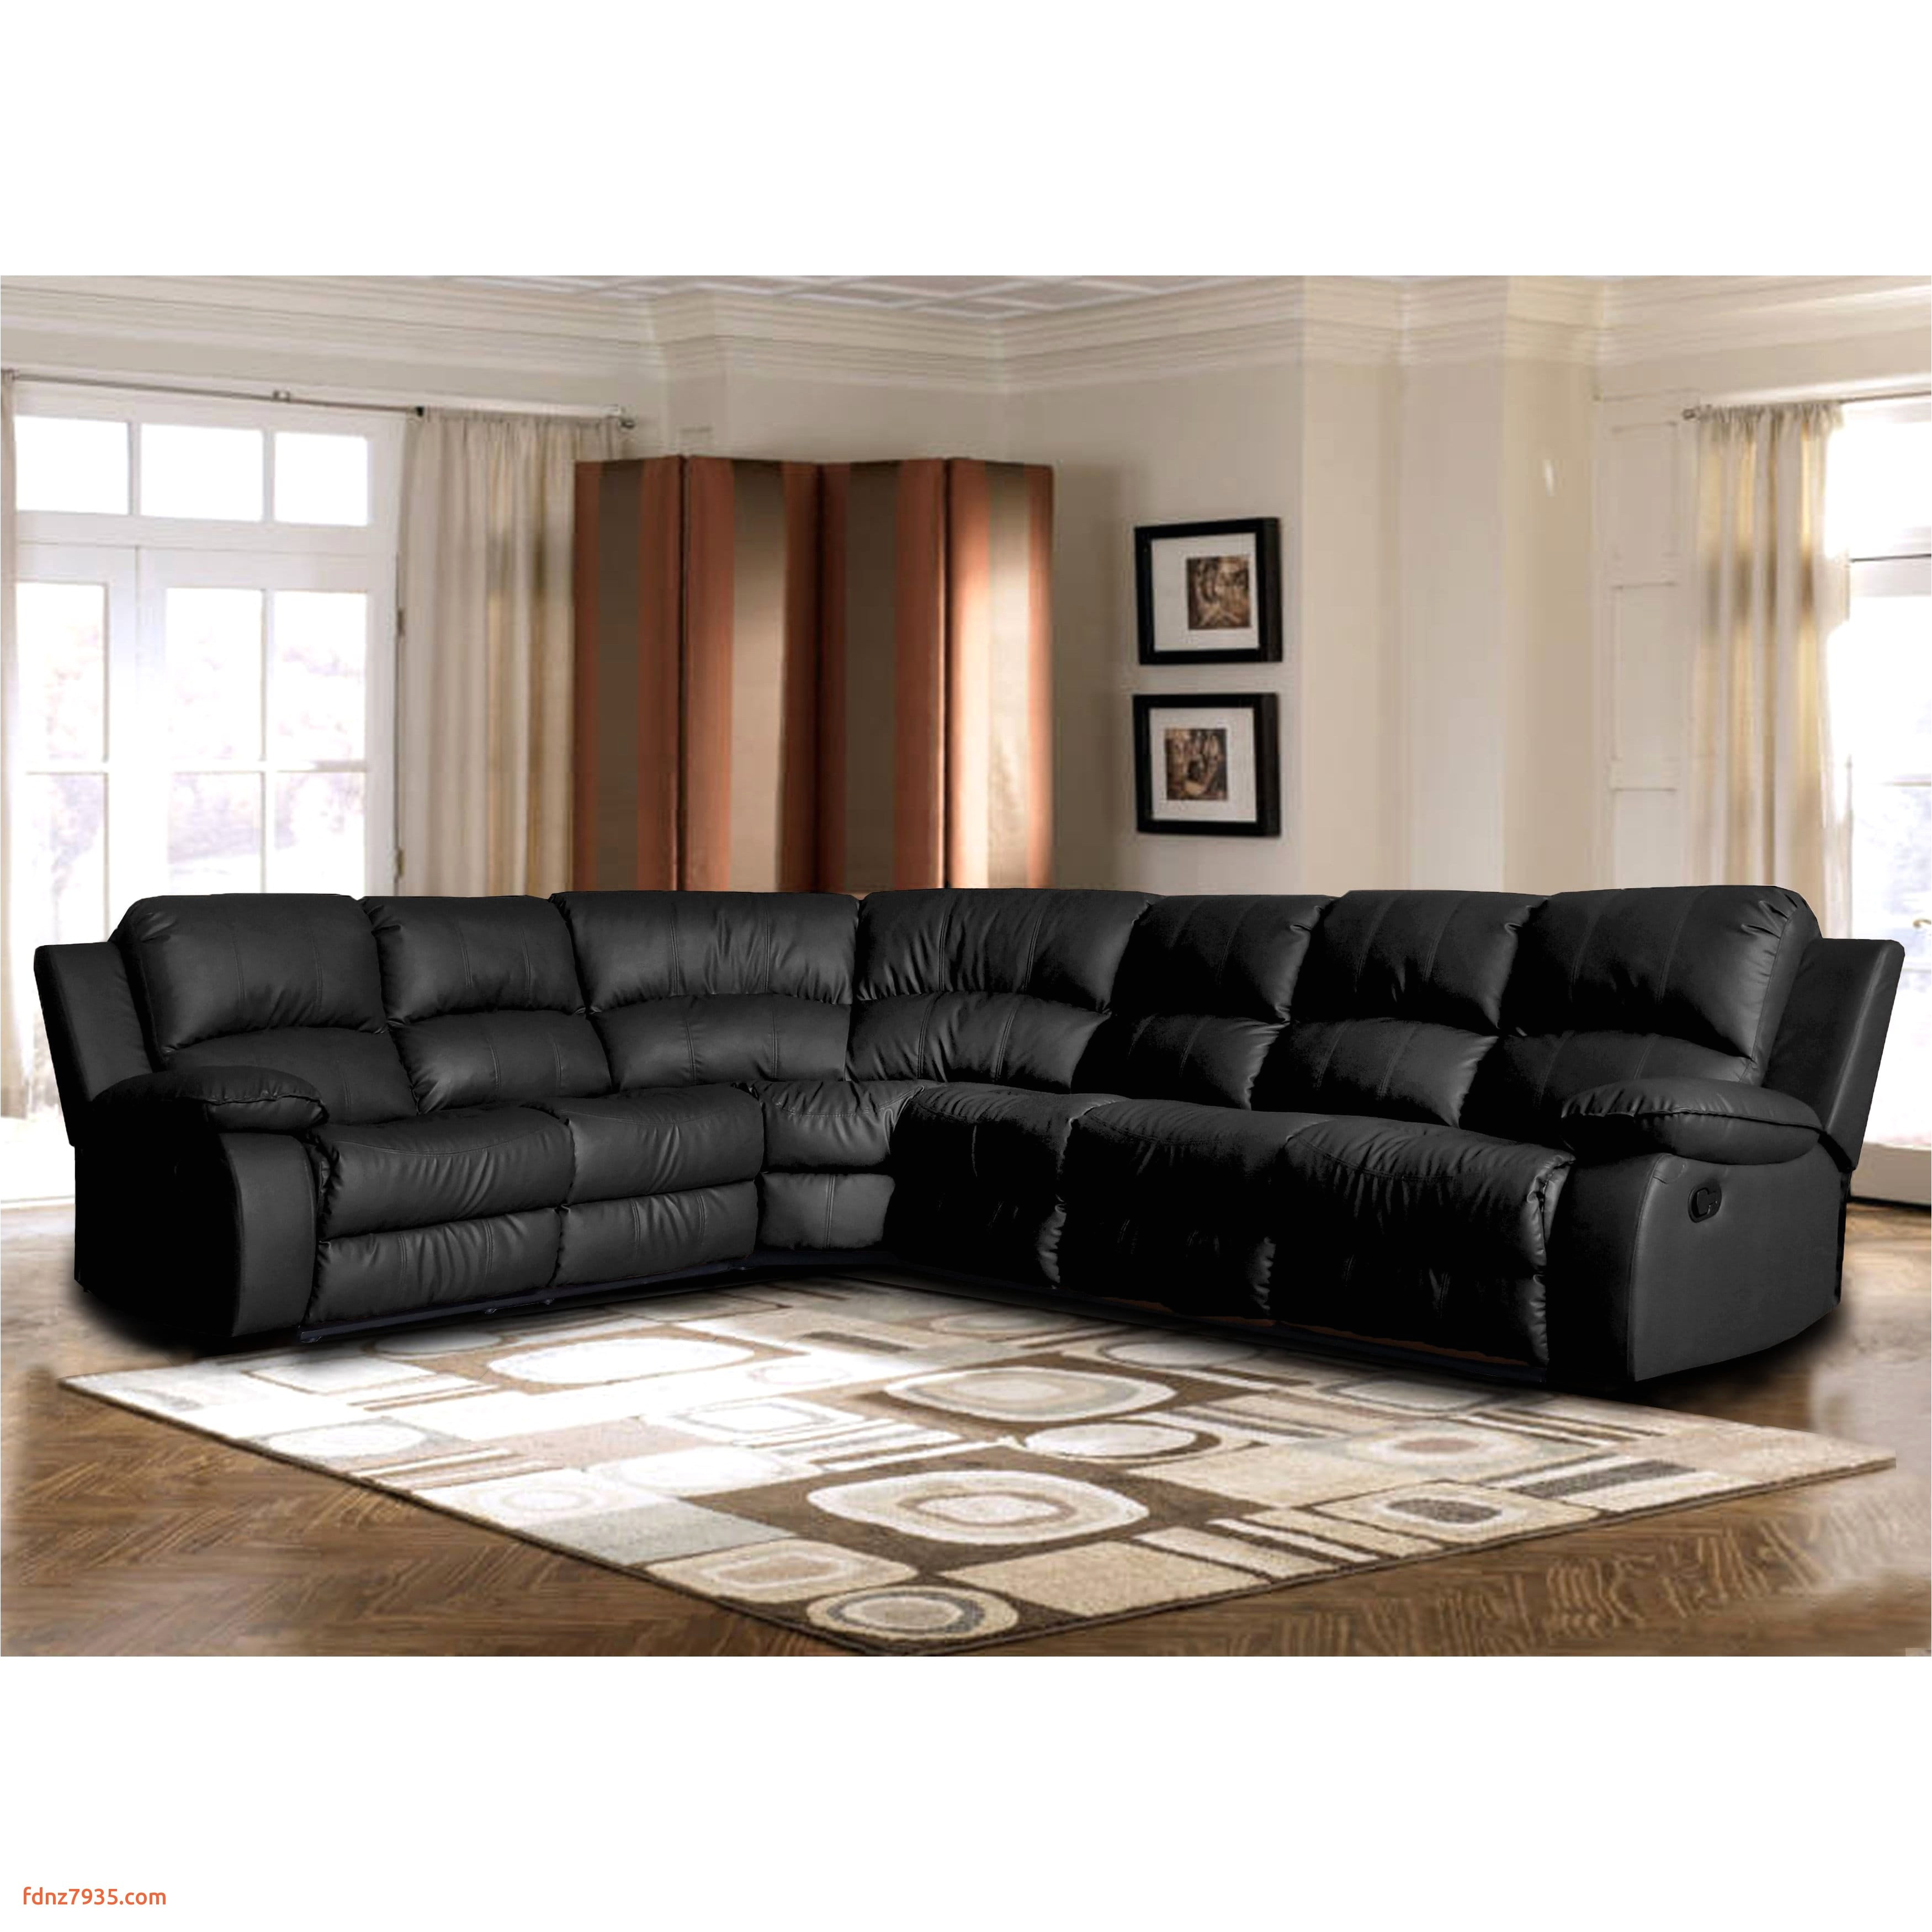 classic oversize and overstuffed corner bonded leather sectional with 2 reclining seats free shipping today overstock